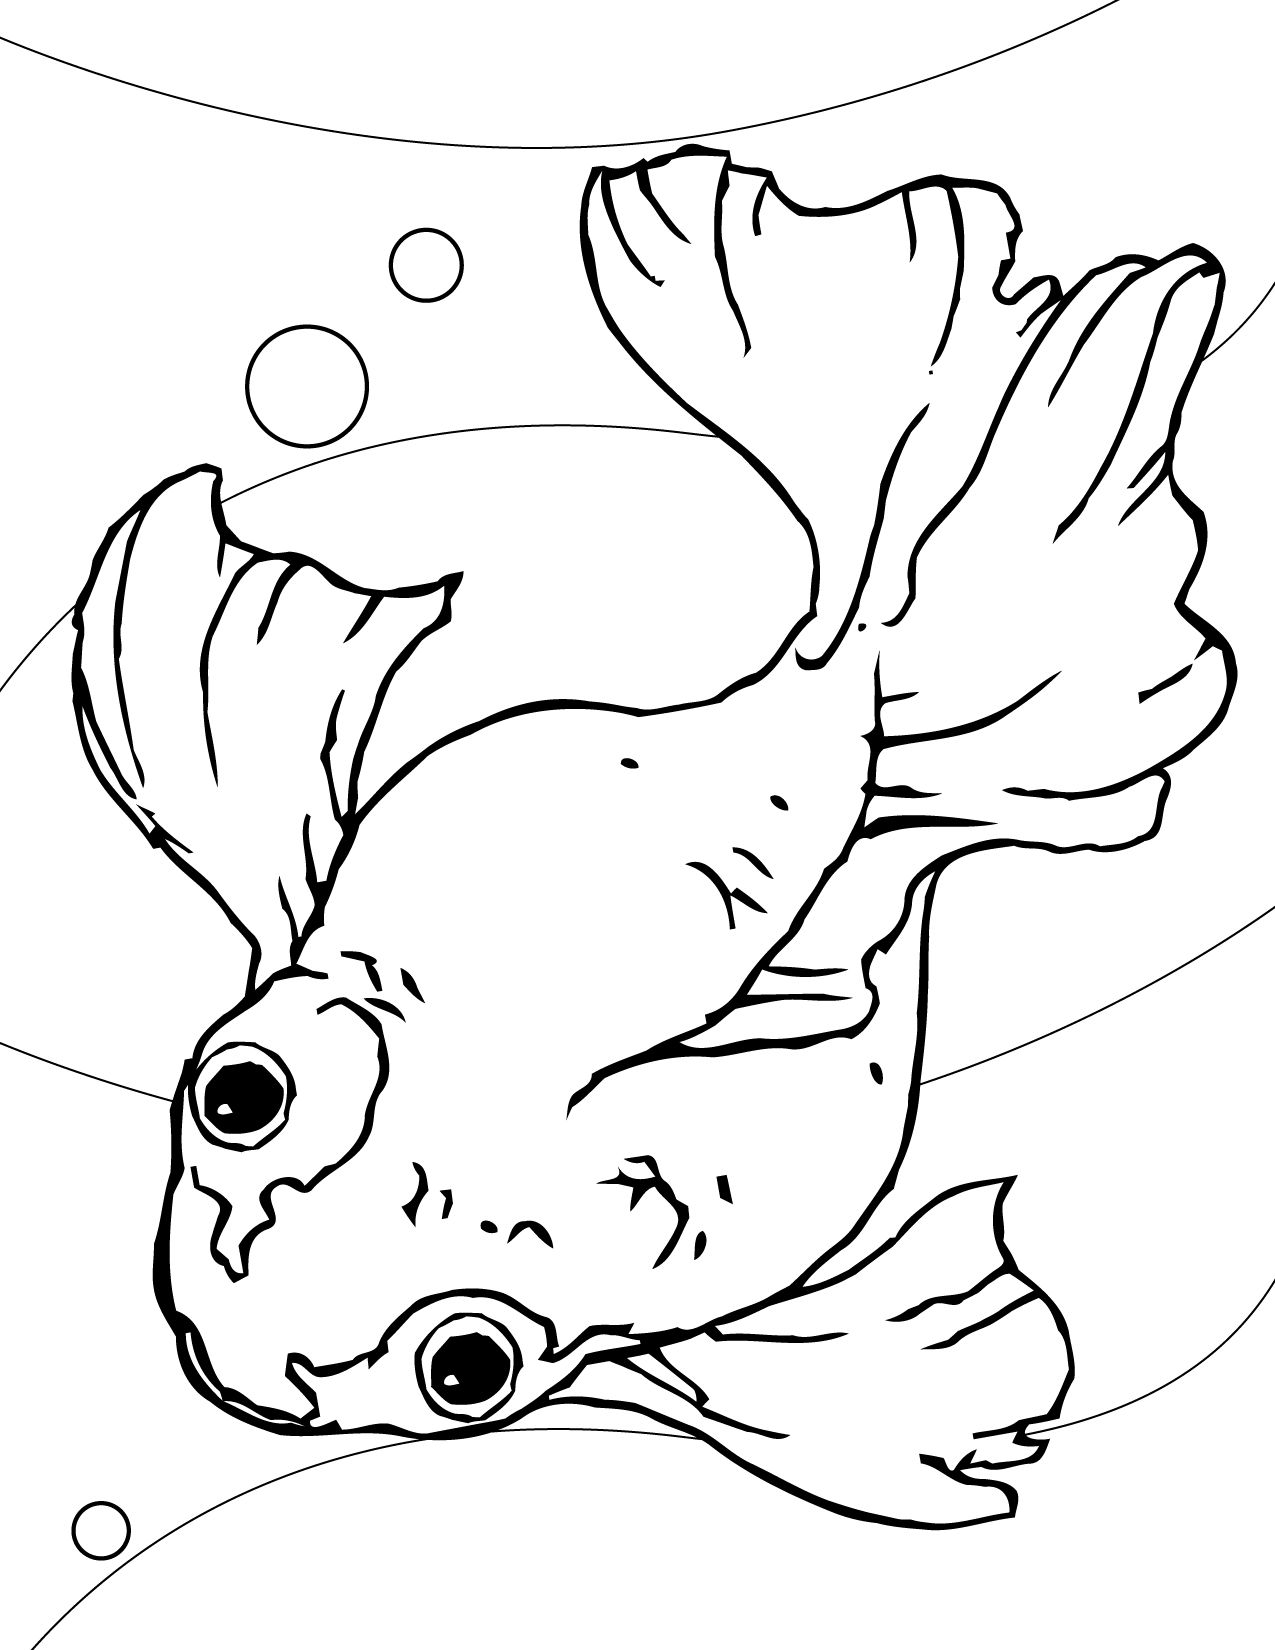 Goldfish-Coloring-Page